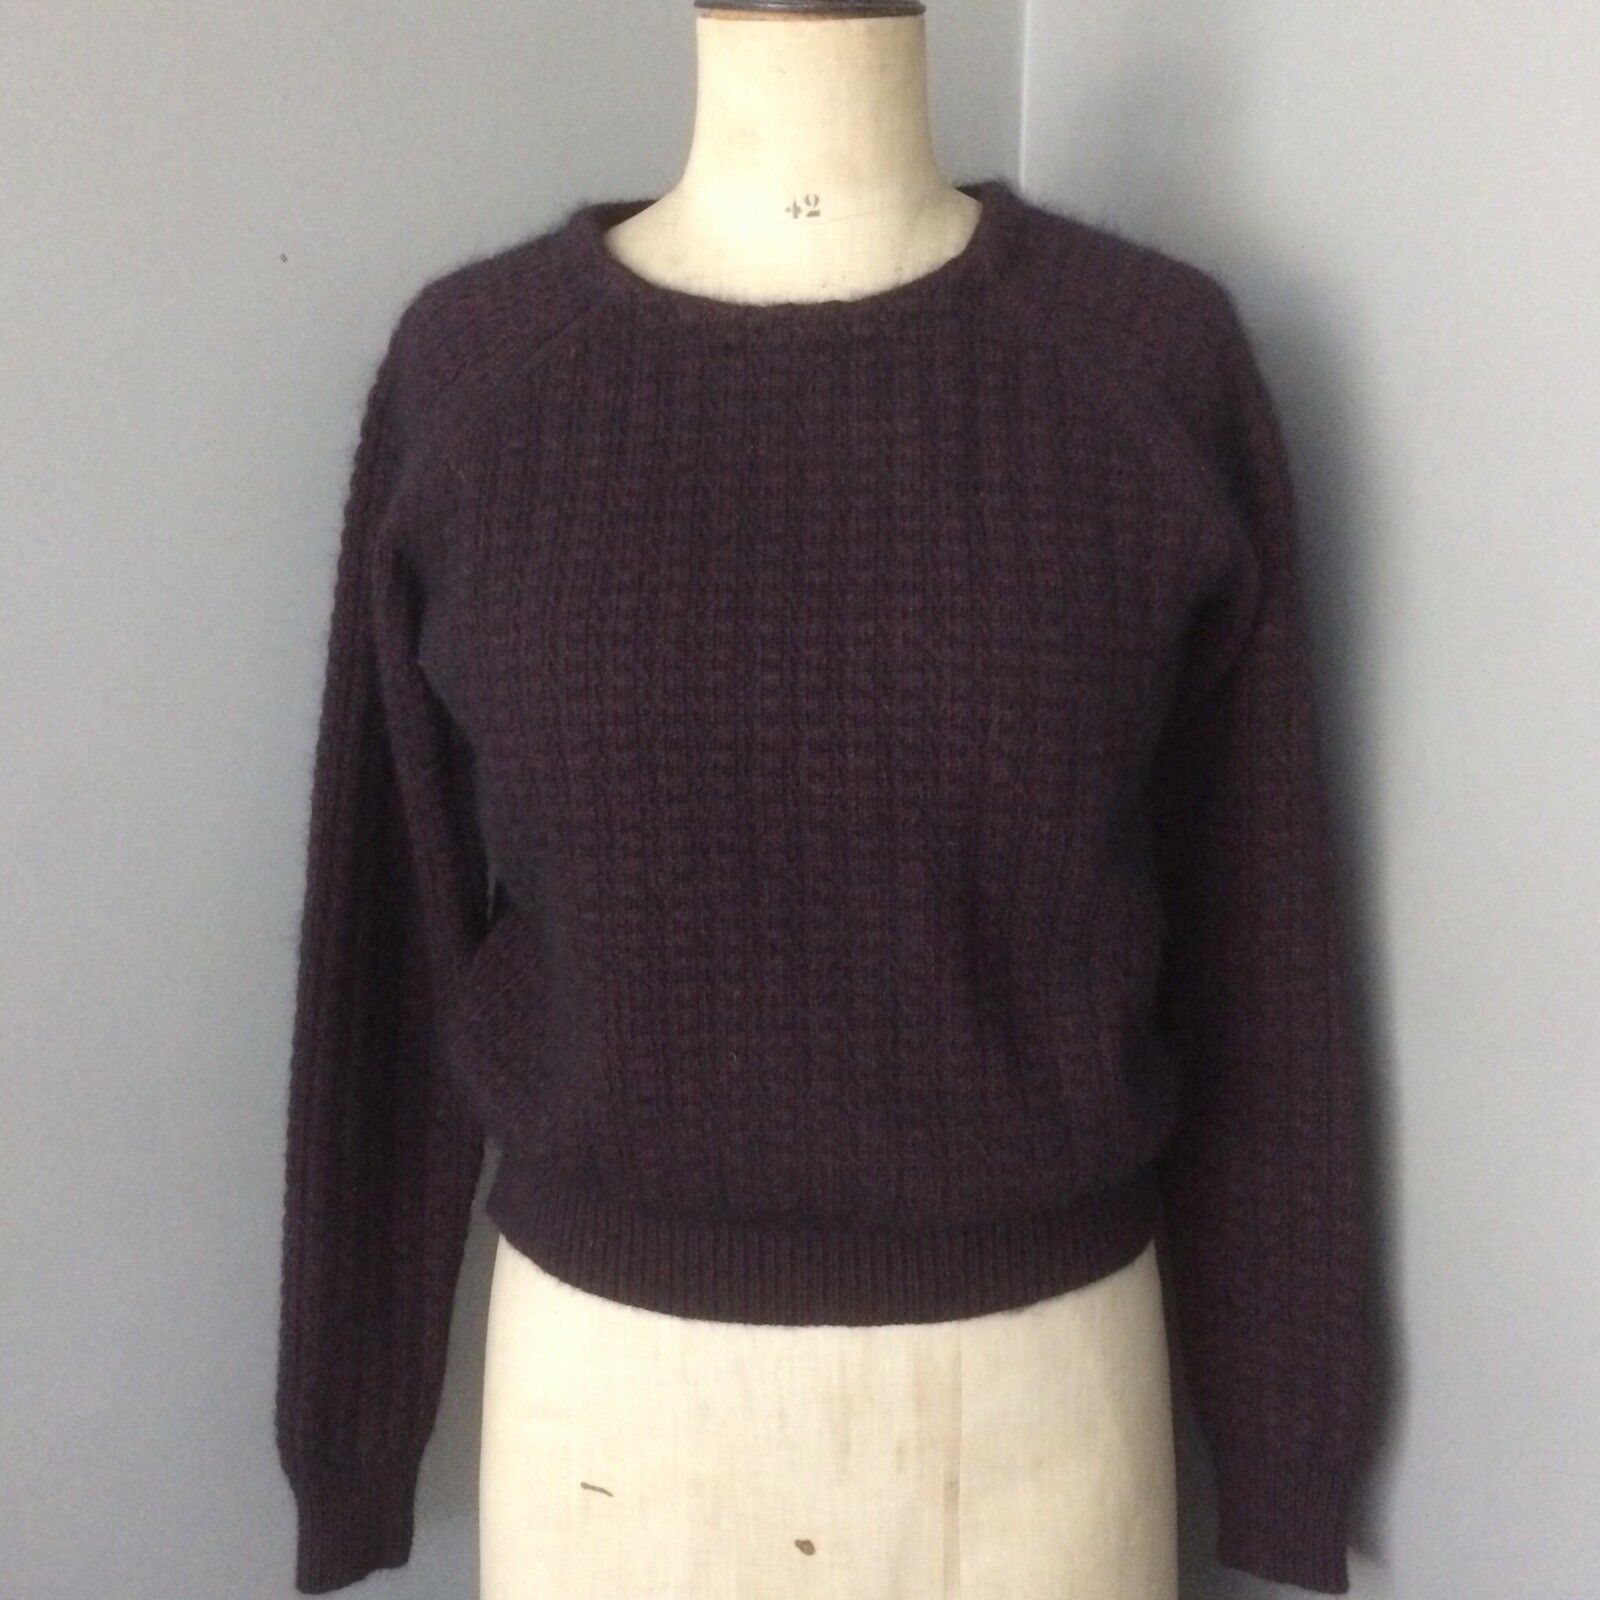 'TOPSHOP BOUTIQUE' Plum Angora Textured Knit Jumper RP